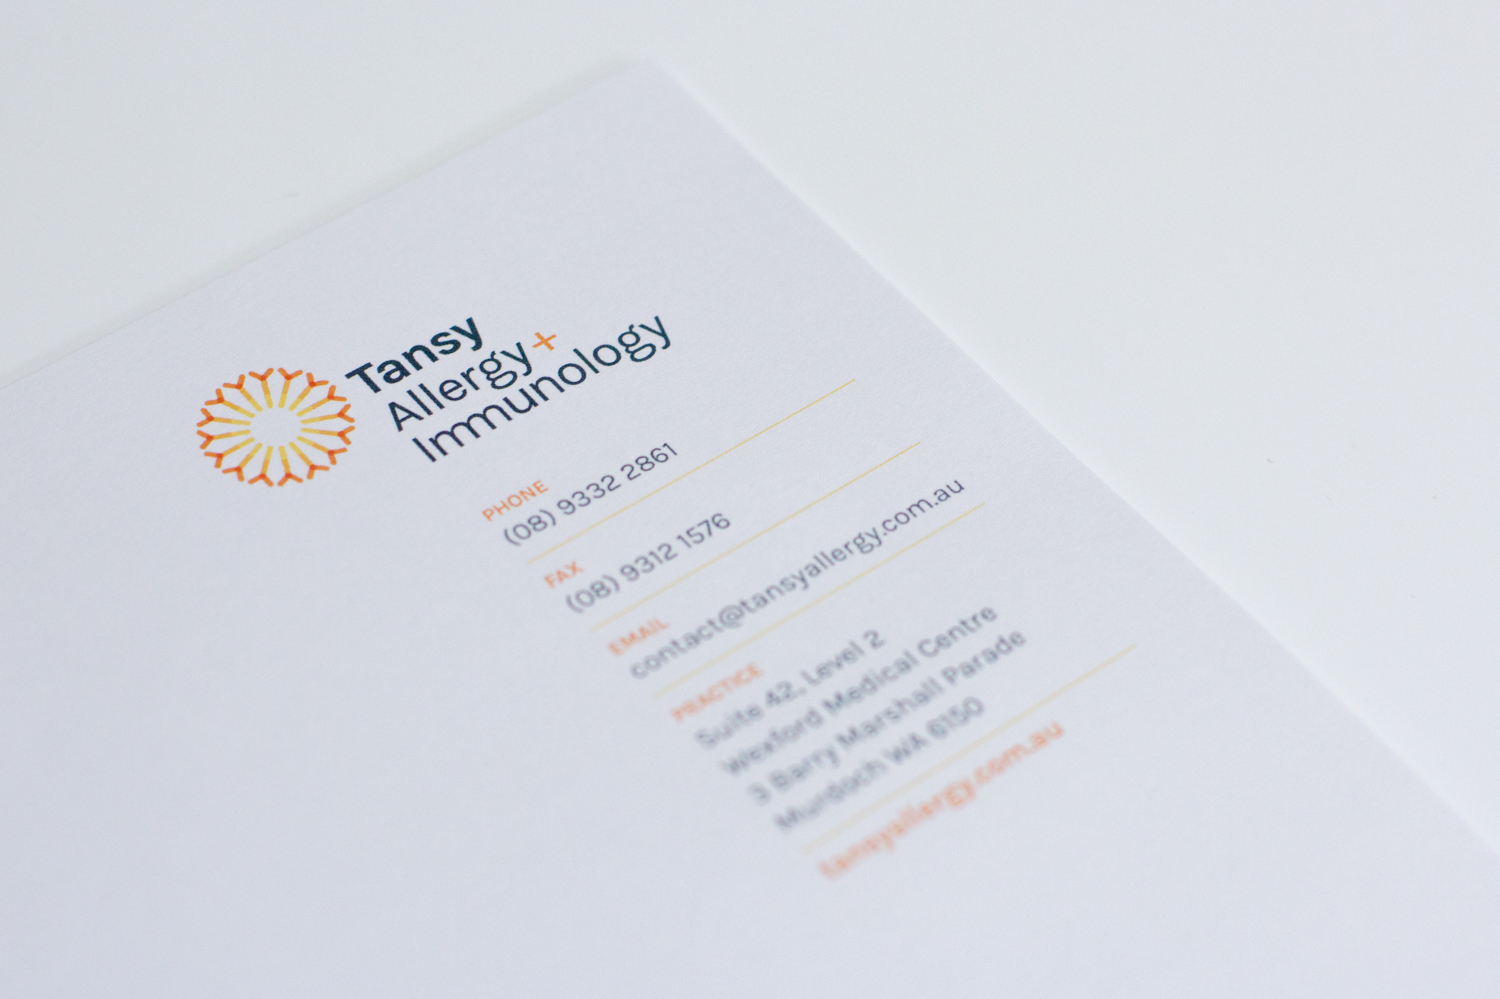 Tansy Allergy letterhead closesup